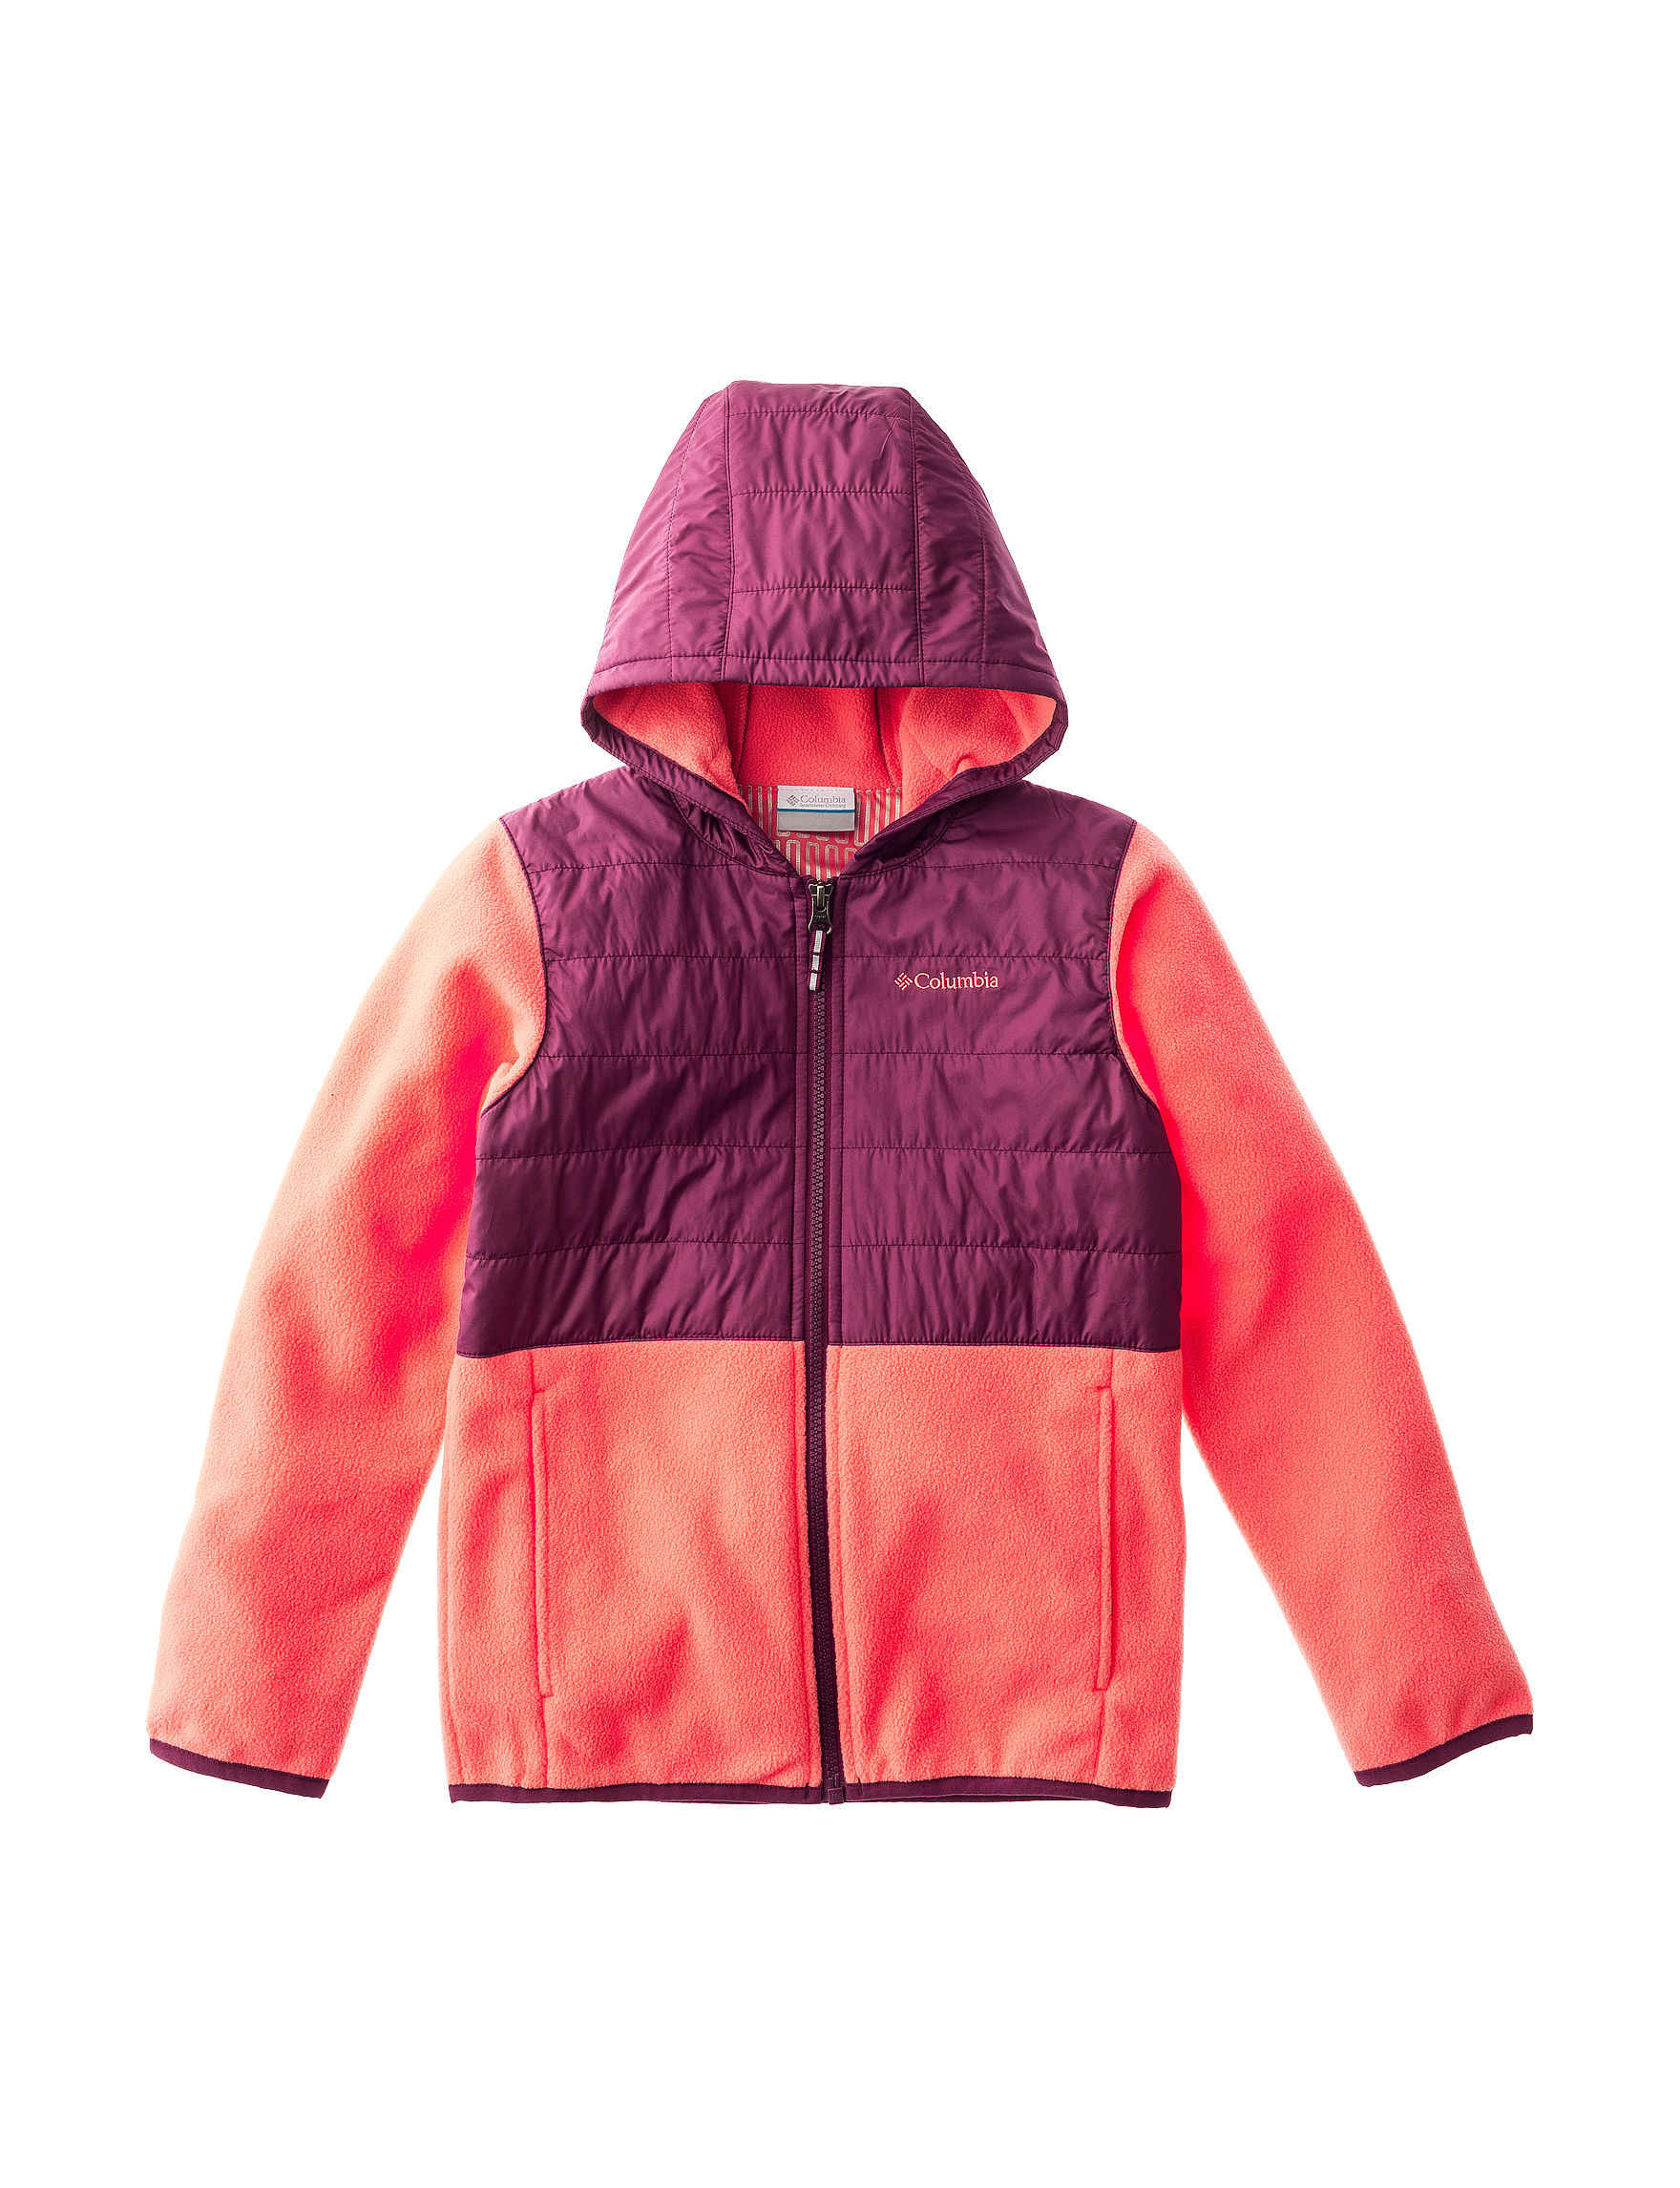 Columbia Coral Puffer & Quilted Jackets